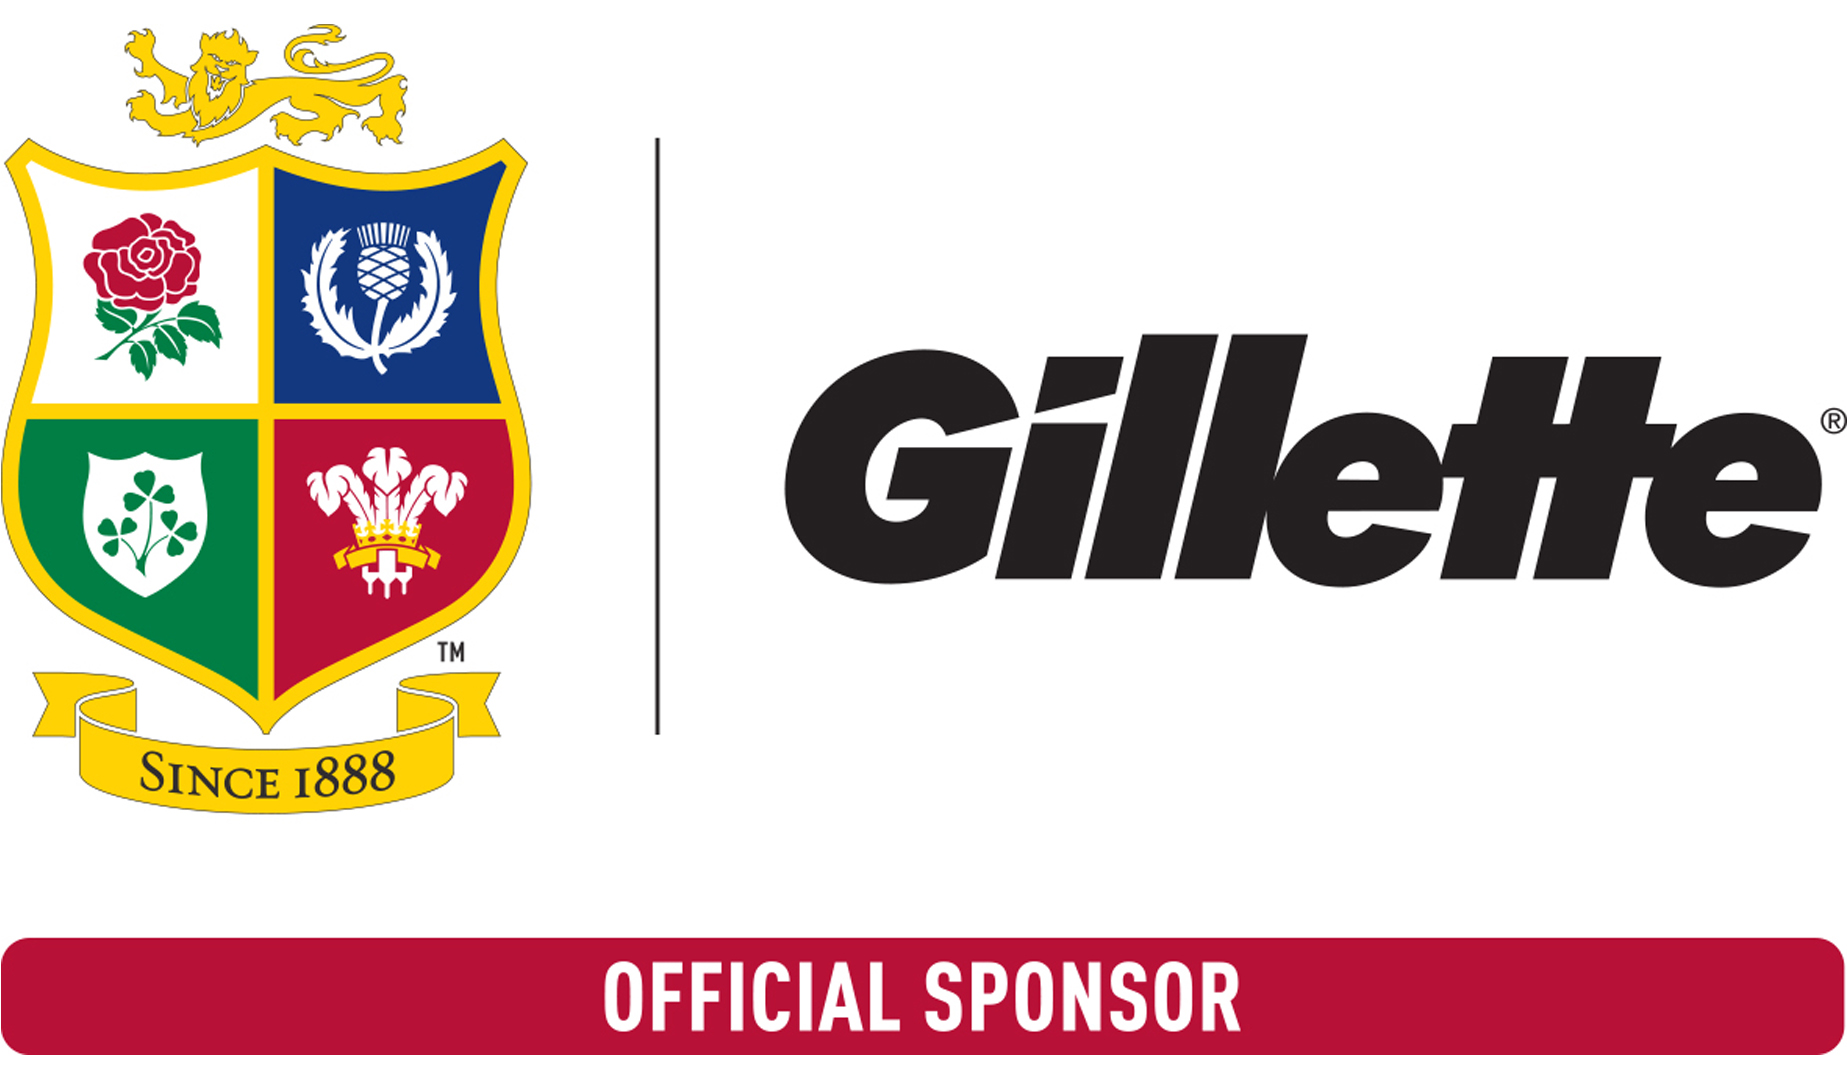 Gillette to be an Official Sponsor of the Tour to New Zealand